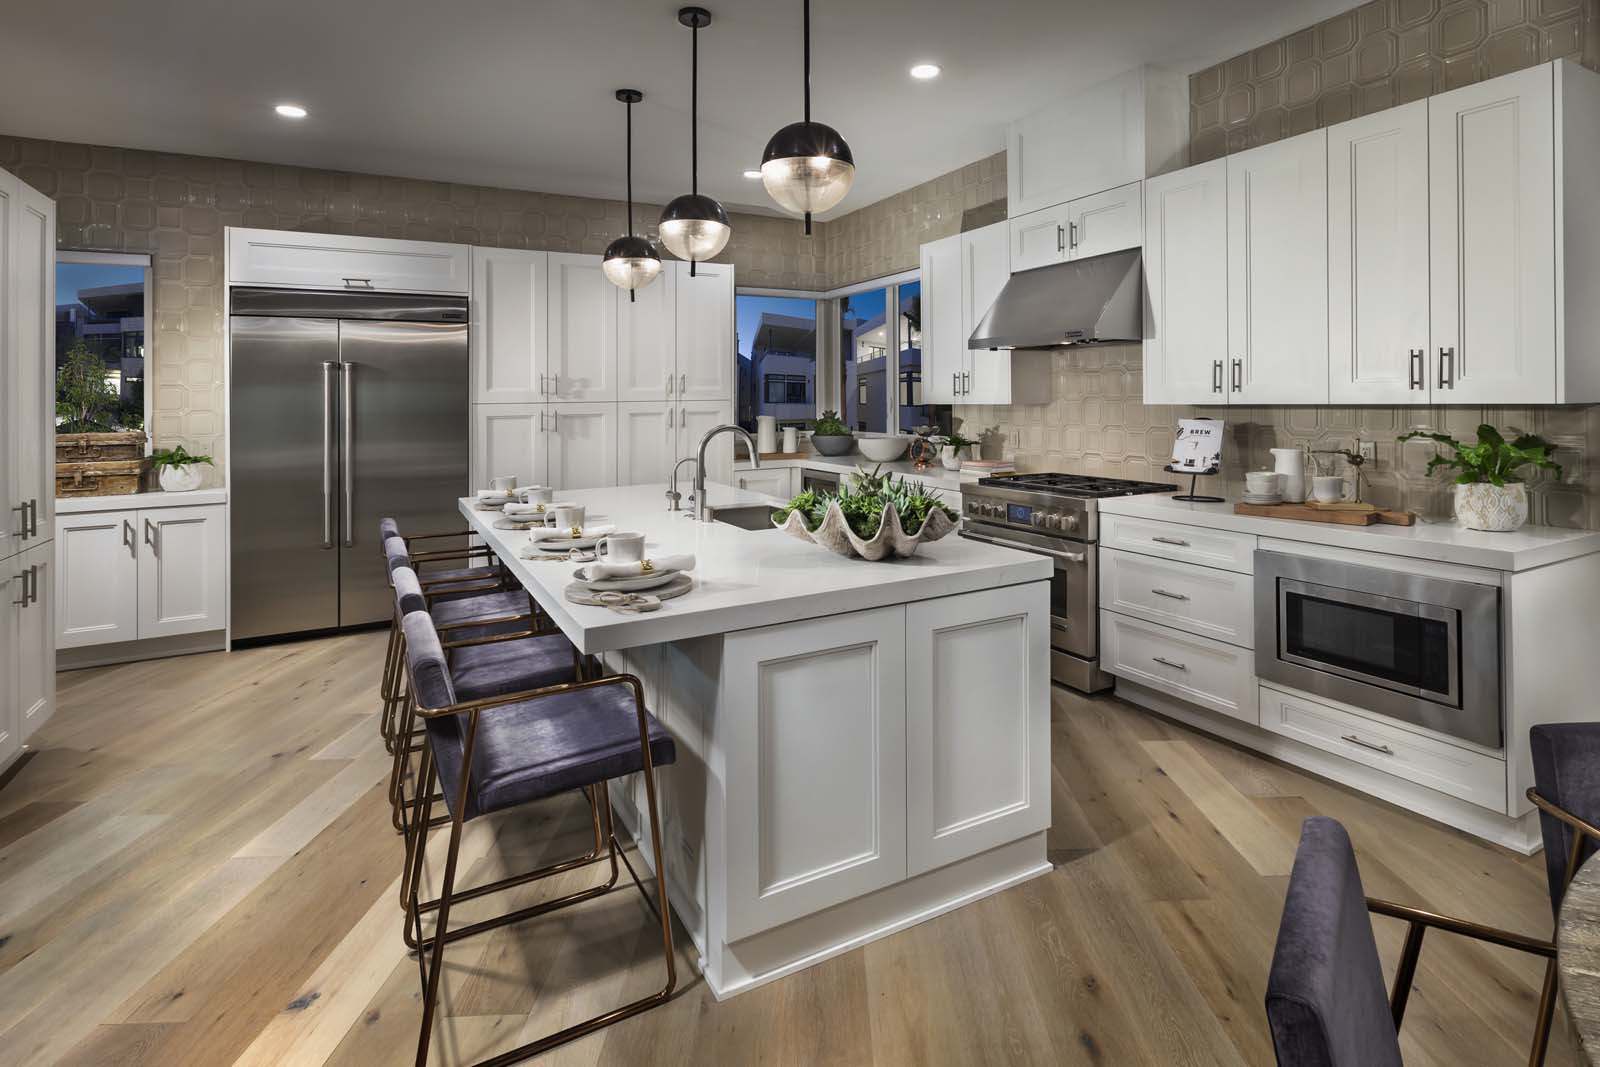 New Townhomes in Playa Vista Kitchen with island